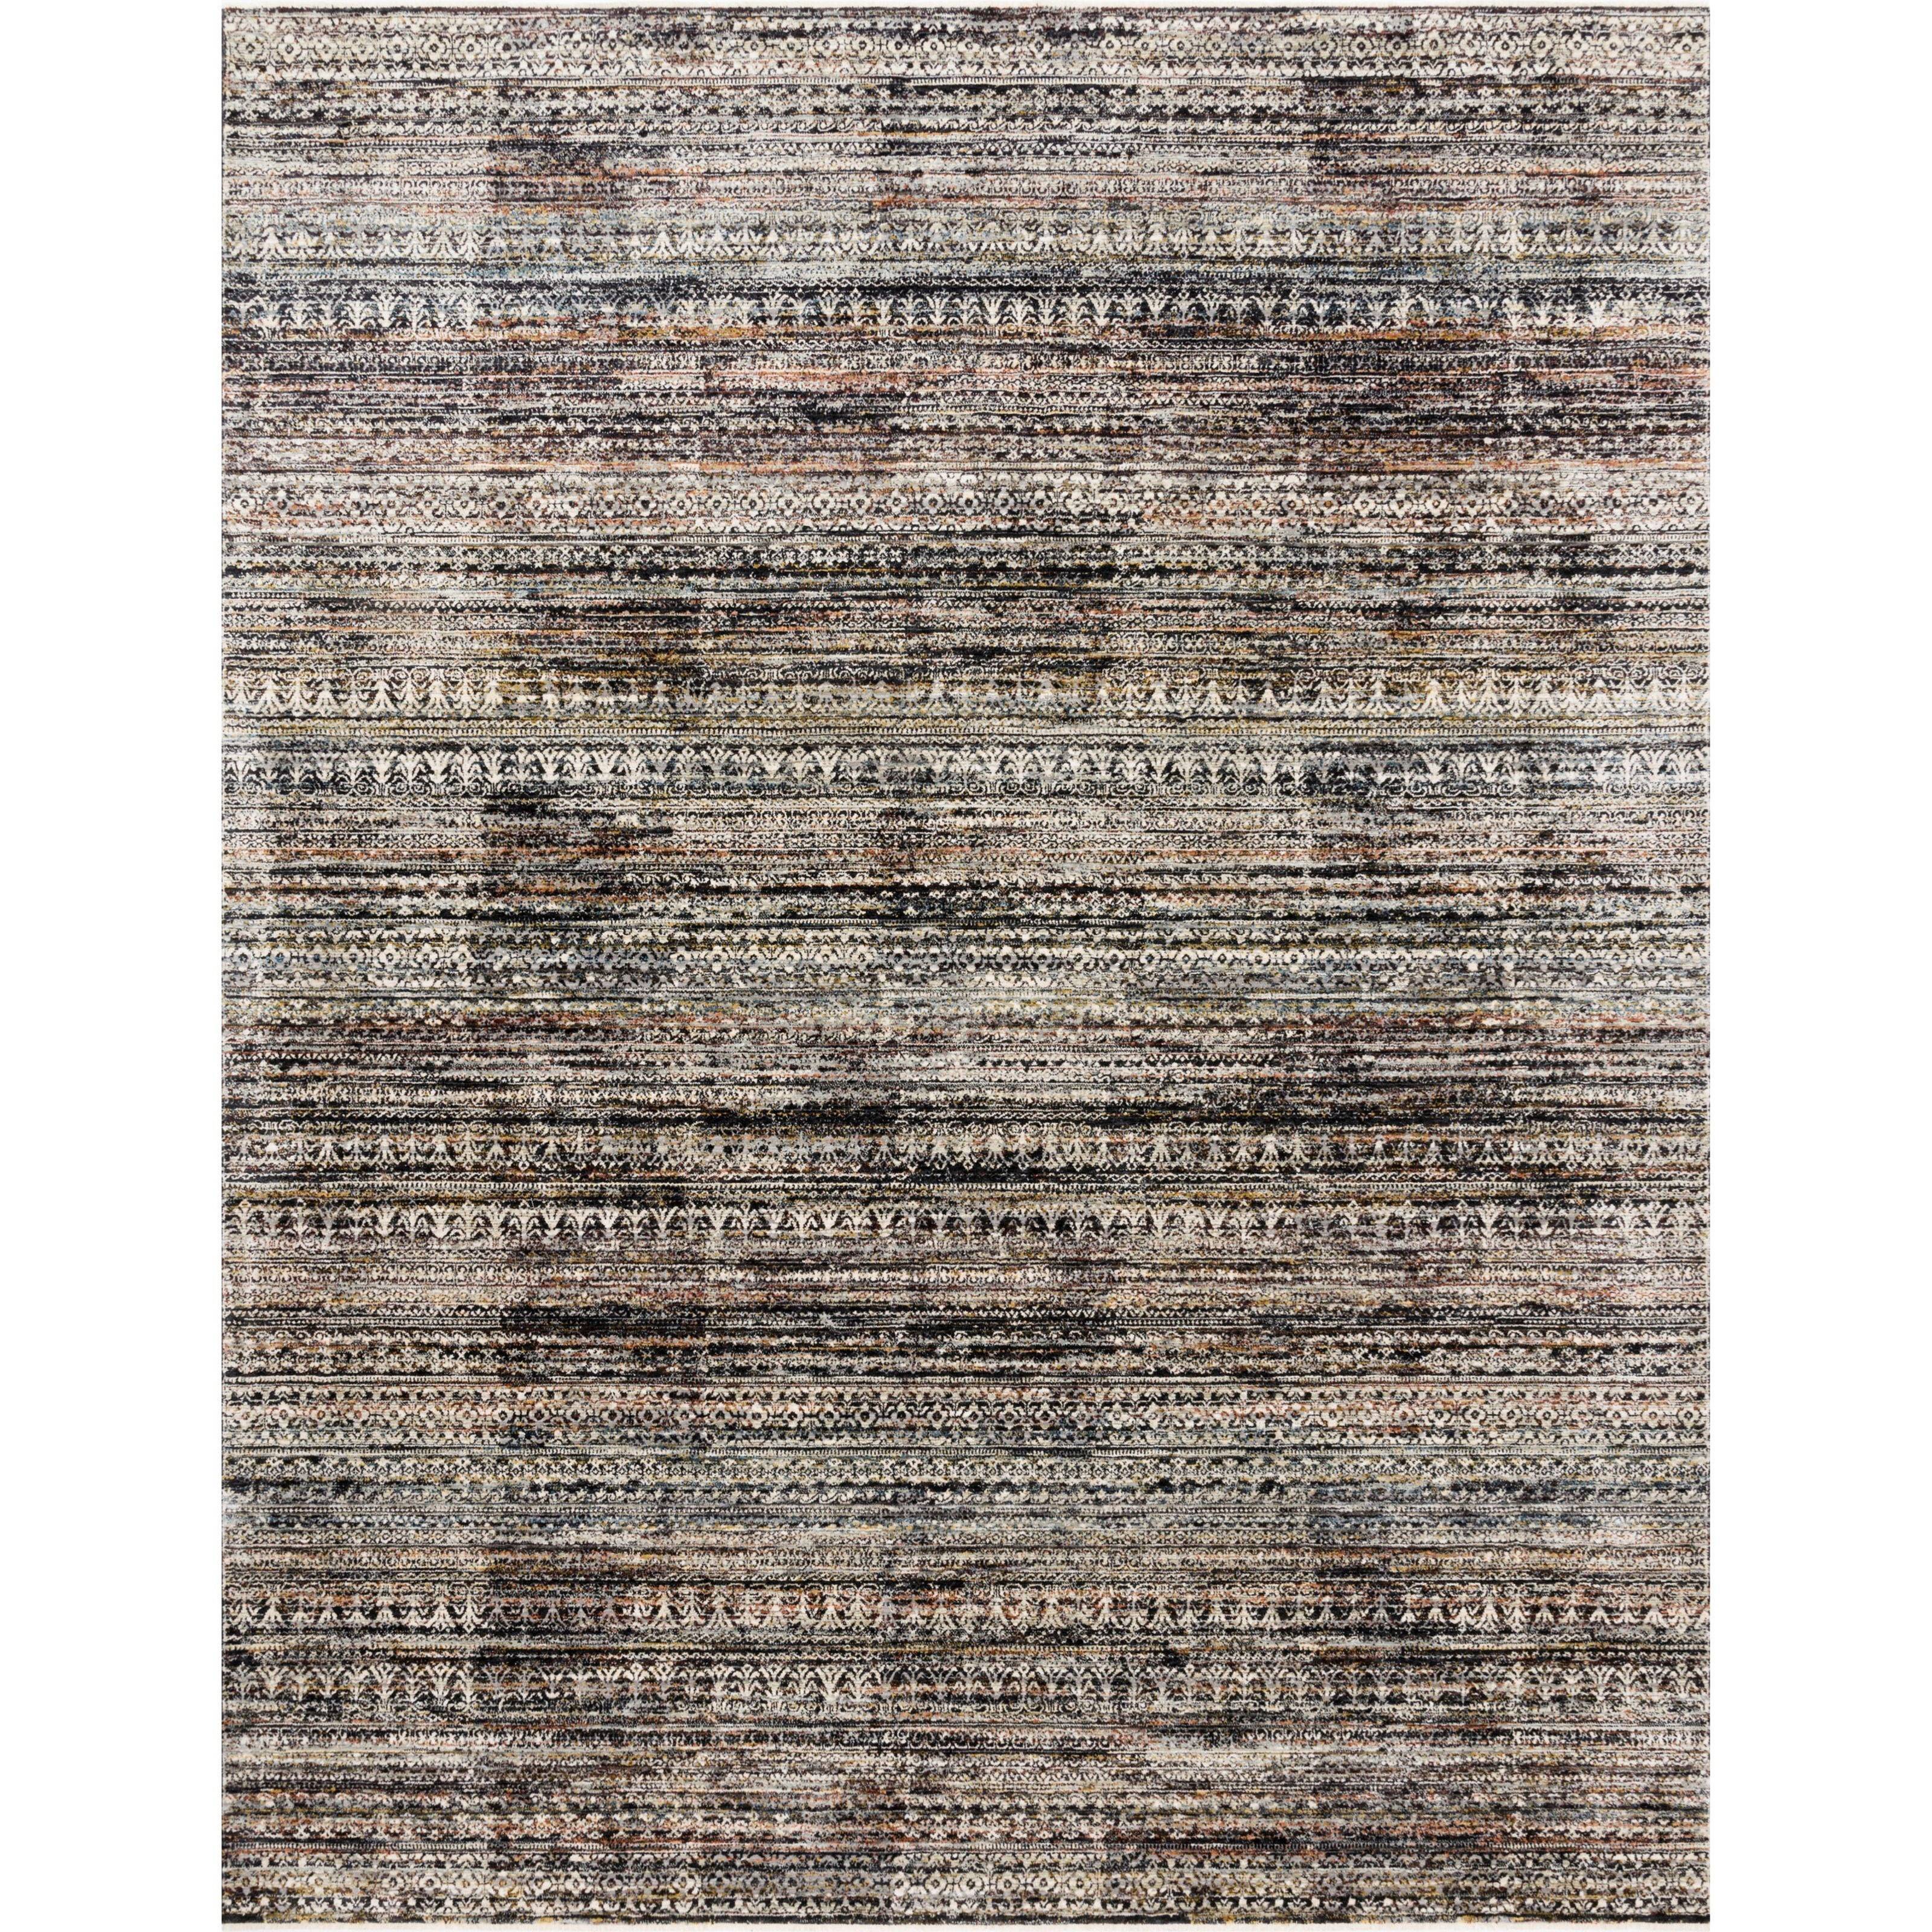 """Theia 2'10"""" x 10' Grey / Multi Rug by Loloi Rugs at Virginia Furniture Market"""